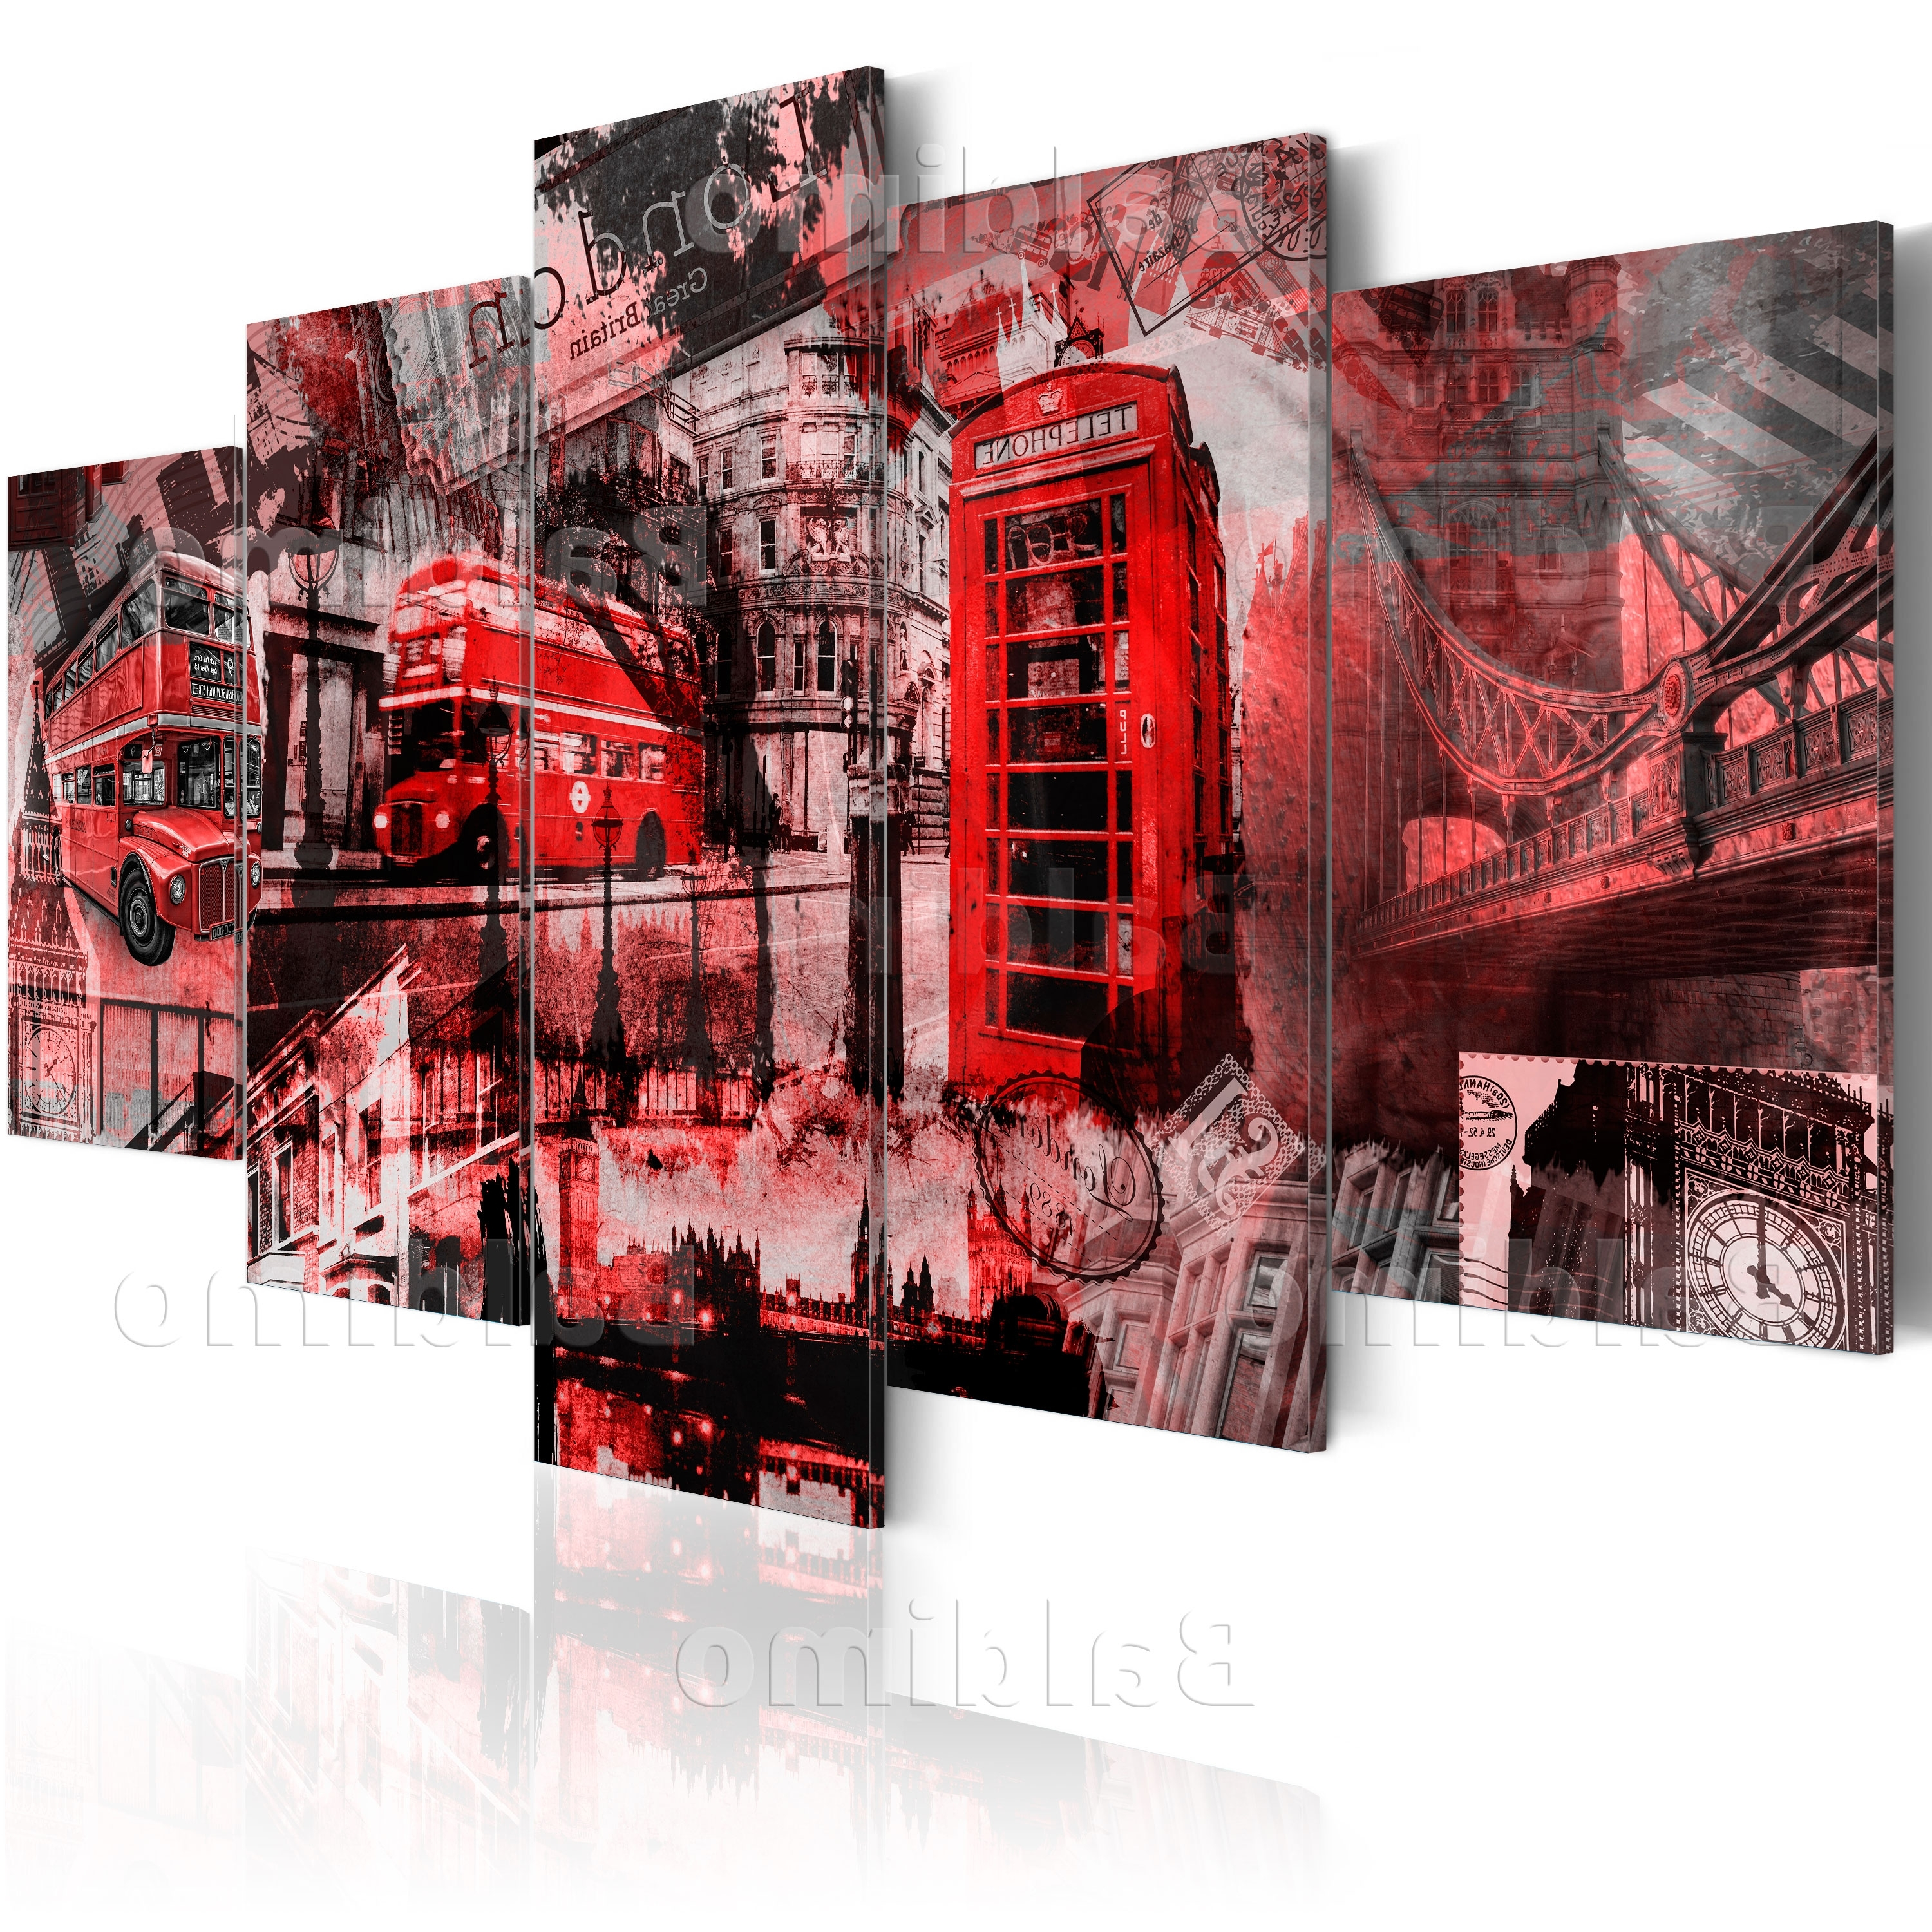 Well Known Canvas Wall Art Of London Regarding Large Canvas Wall Art Print + Image + Picture + Photo London (View 2 of 15)